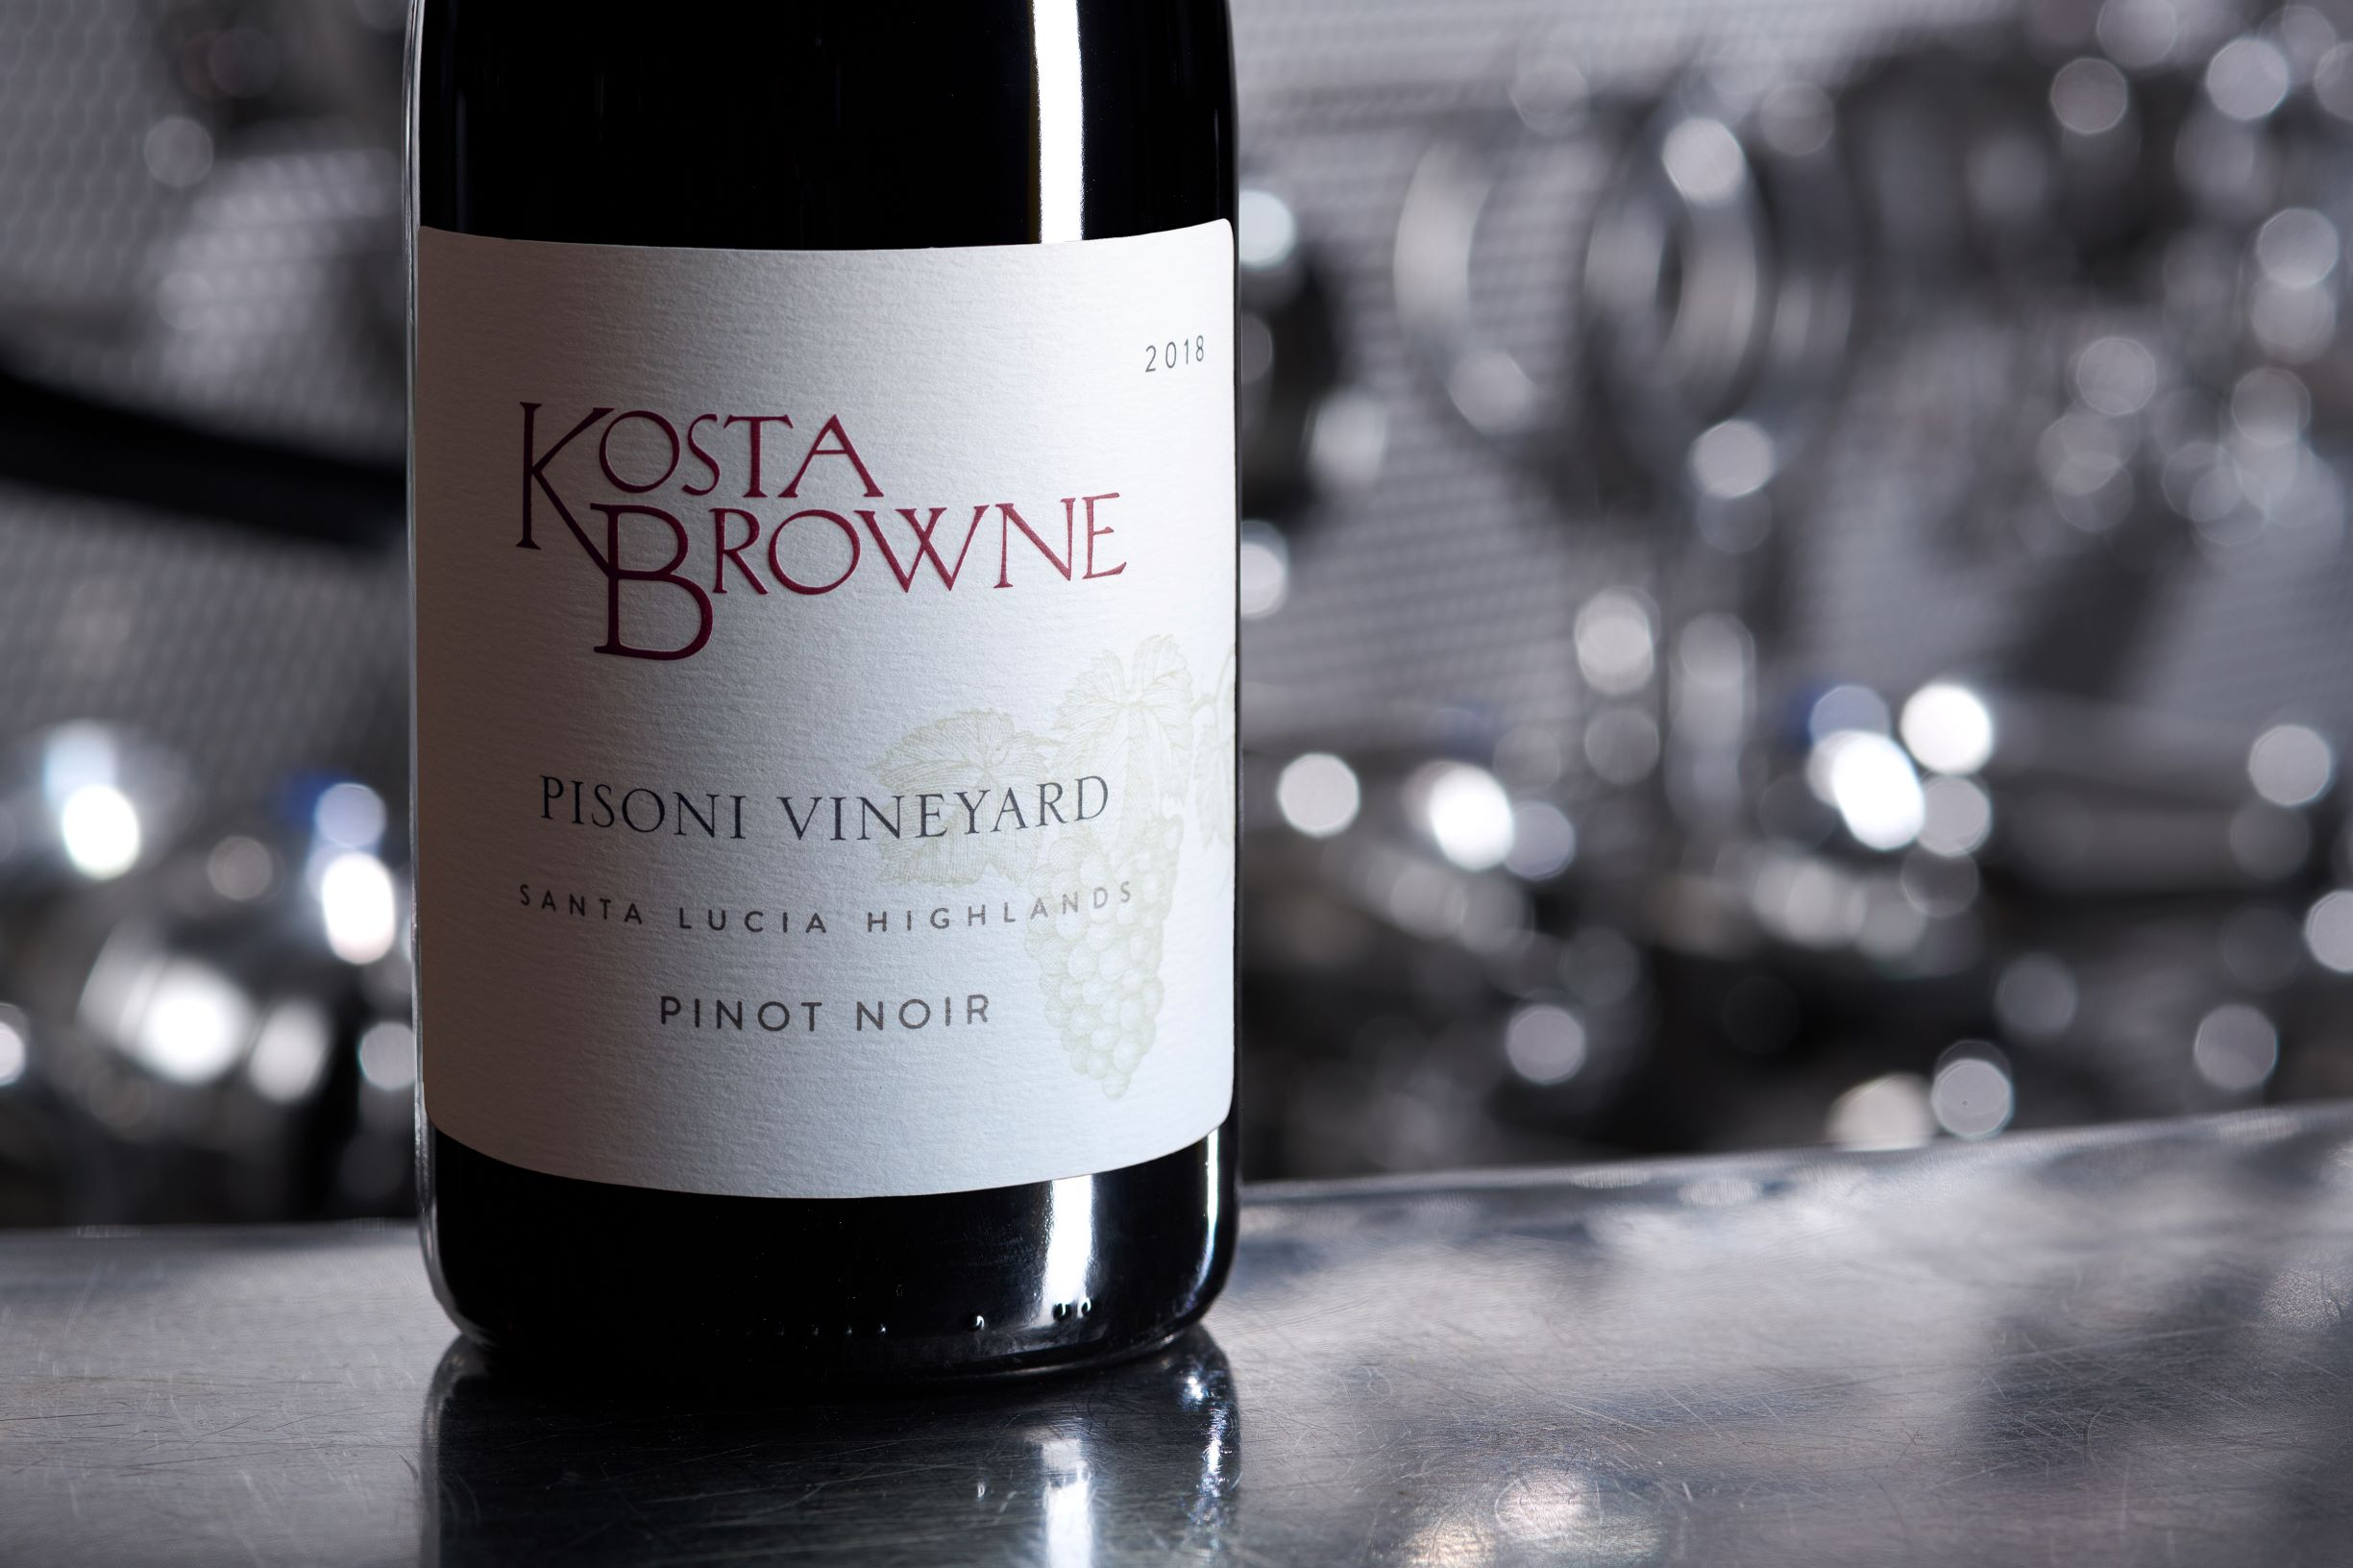 2018 Pisoni Vineyard Santa Lucia Highlands, Pinot Noir - Kosta Browne Winery